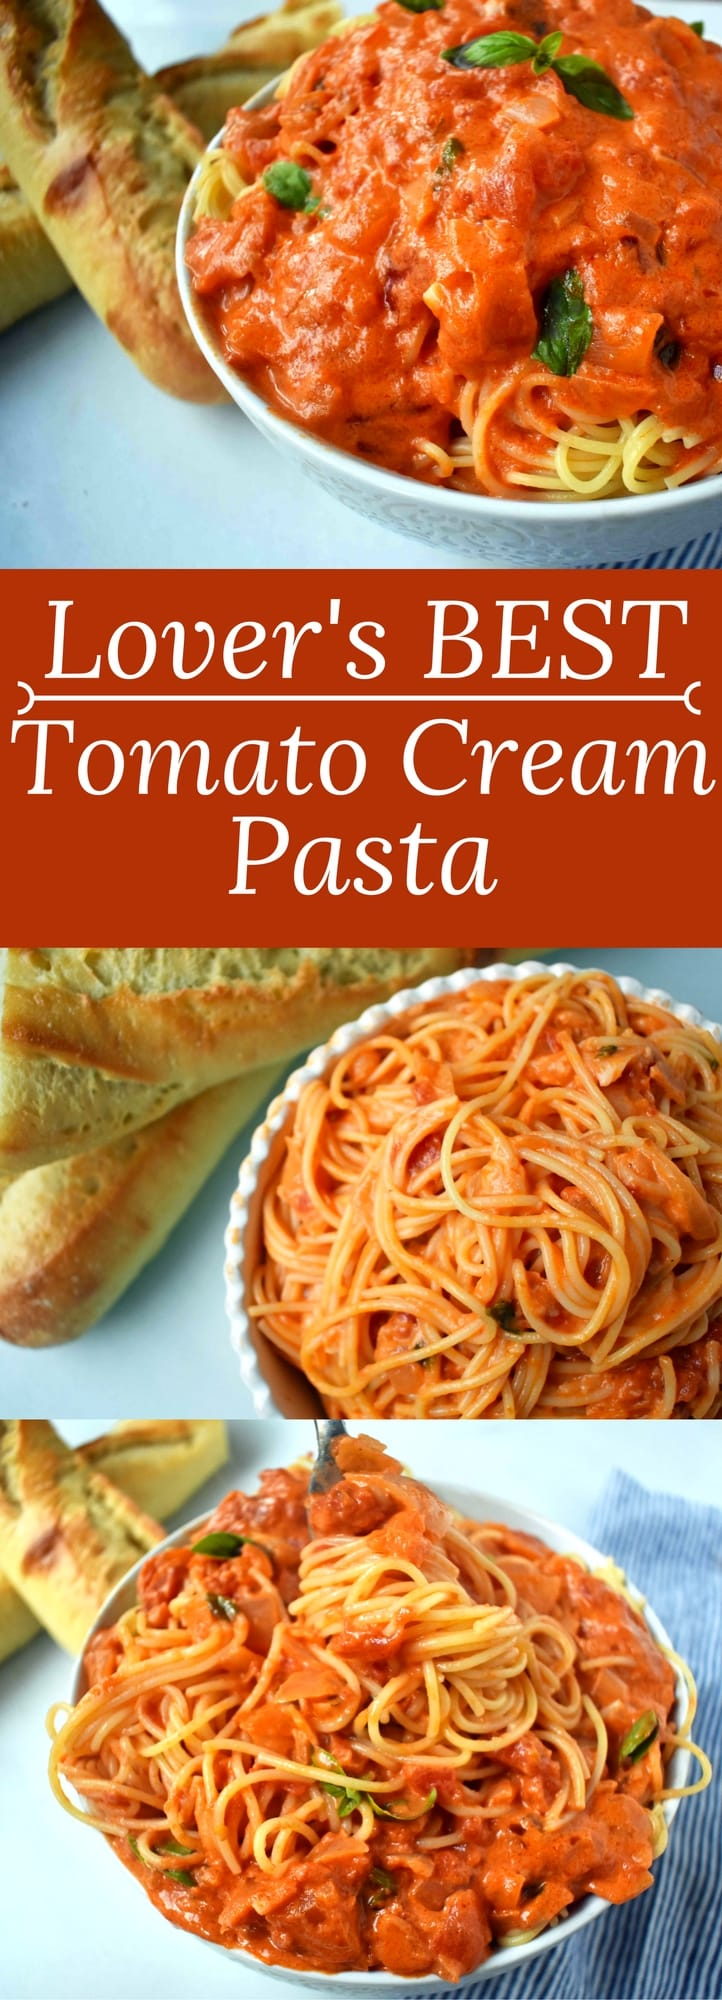 Lover's BEST EVER Tomato Cream Pasta by Modern Honey